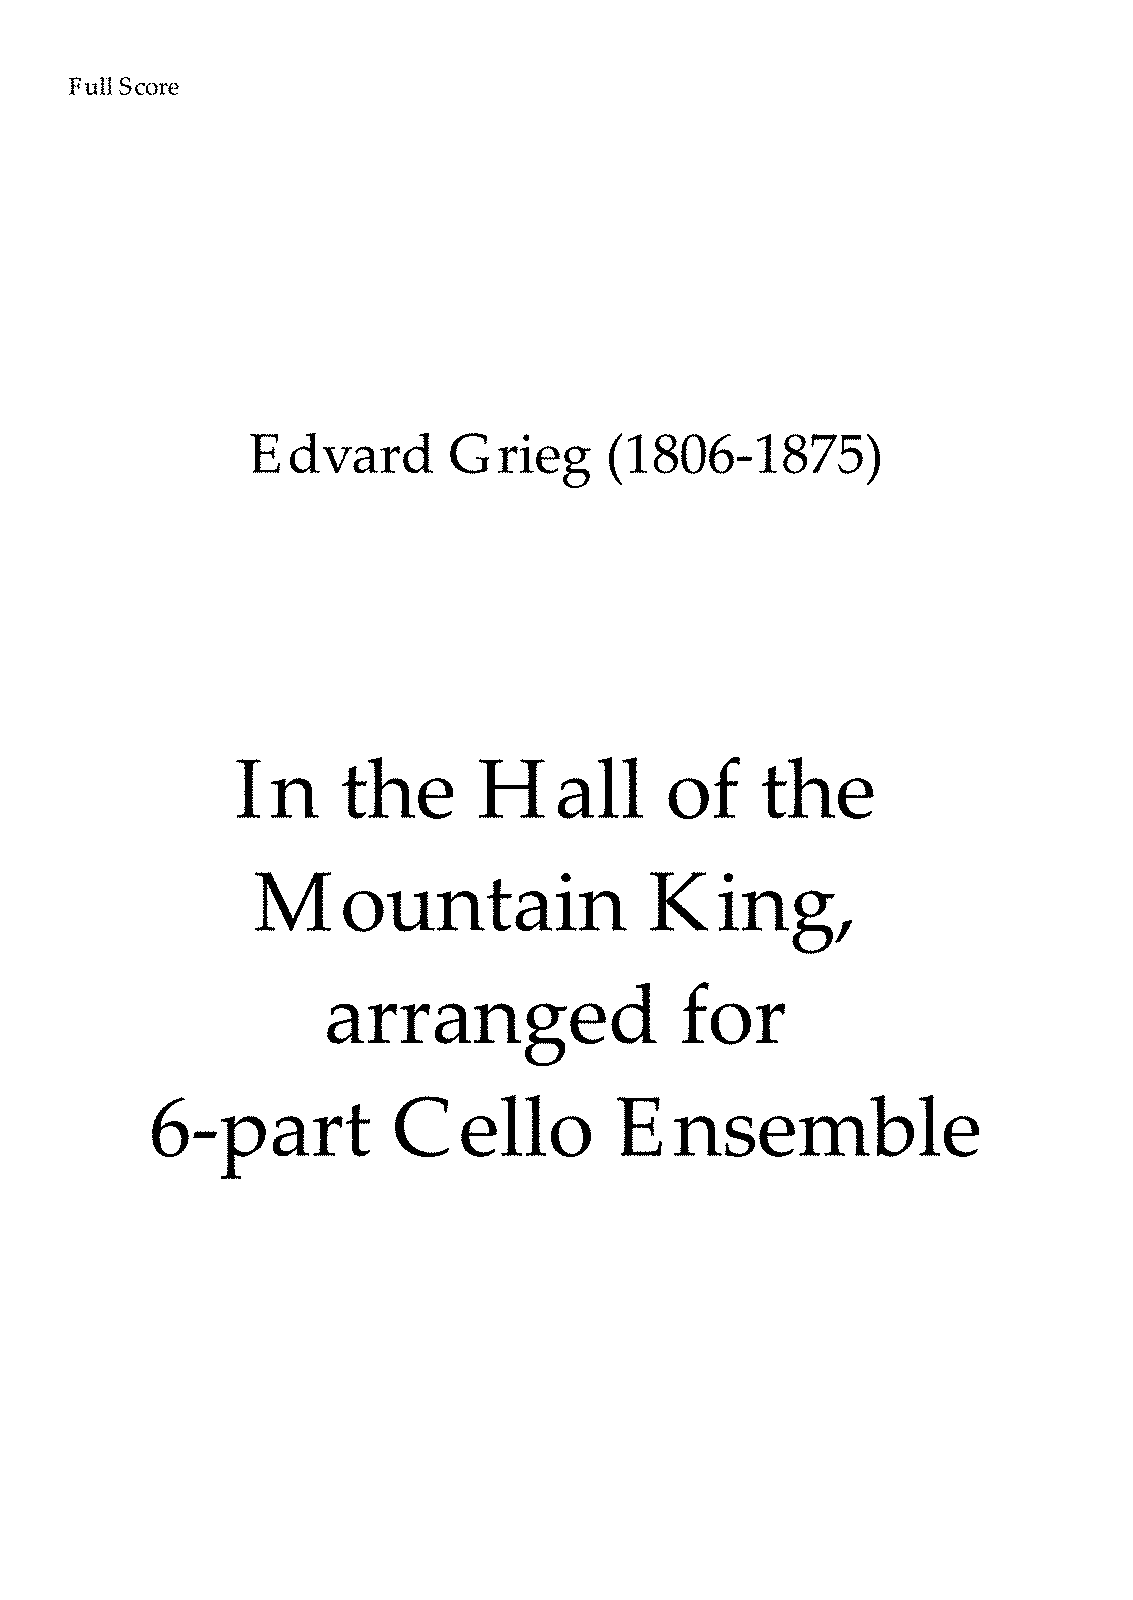 PMLP02533-Grieg Hall MountainKing CelloOrchestraArrangement Seymour ForIMSLP - Full Score.pdf